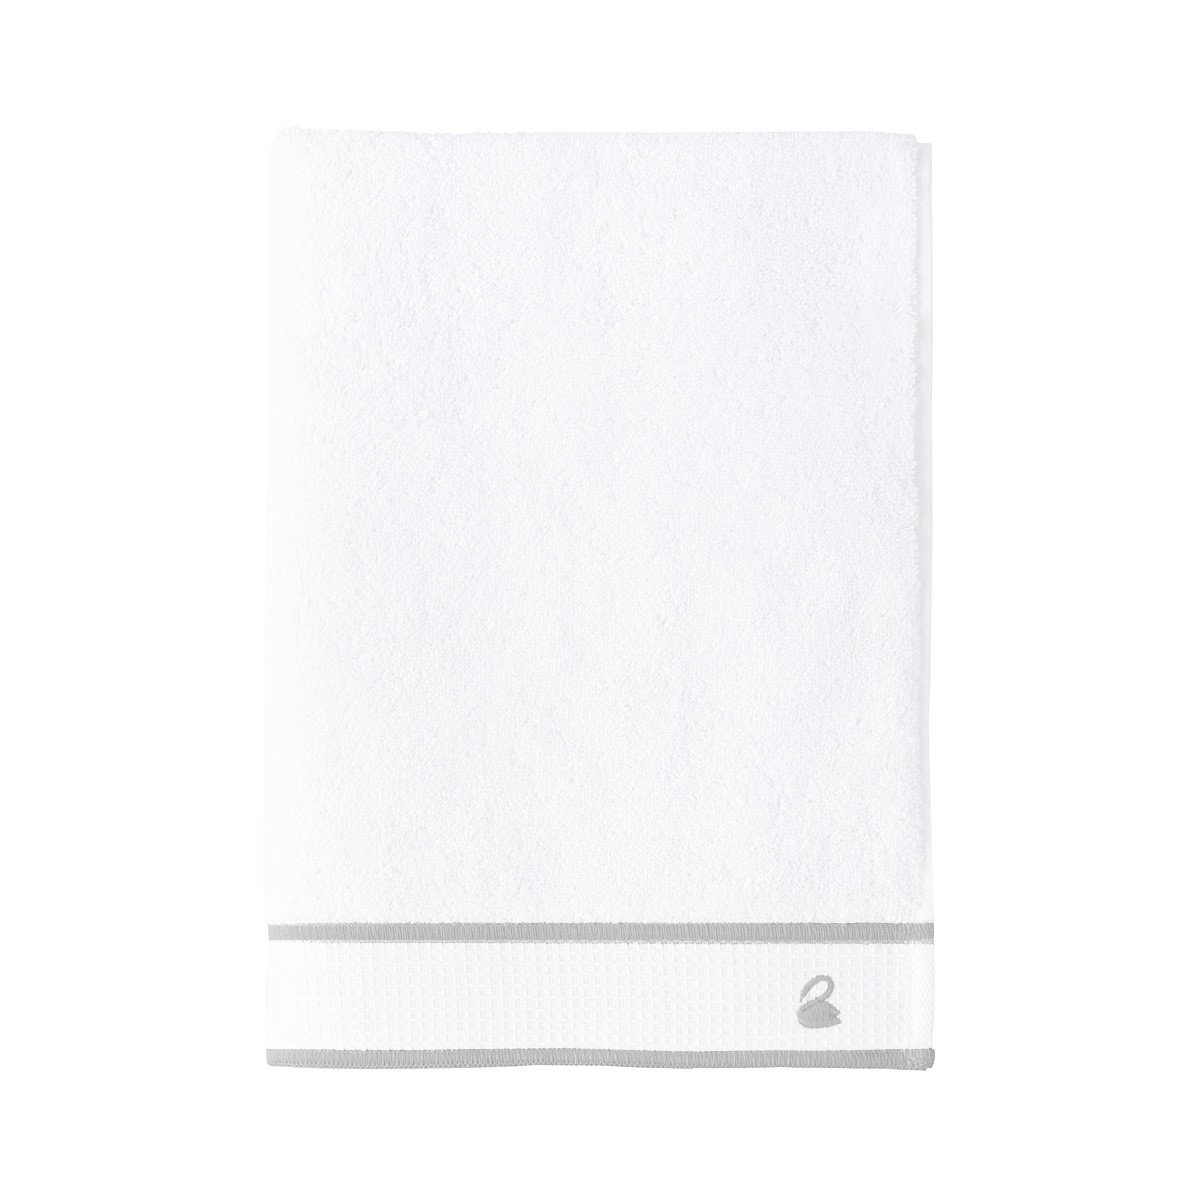 Yves Delorme Flandre Bath Towel Collection - Silver